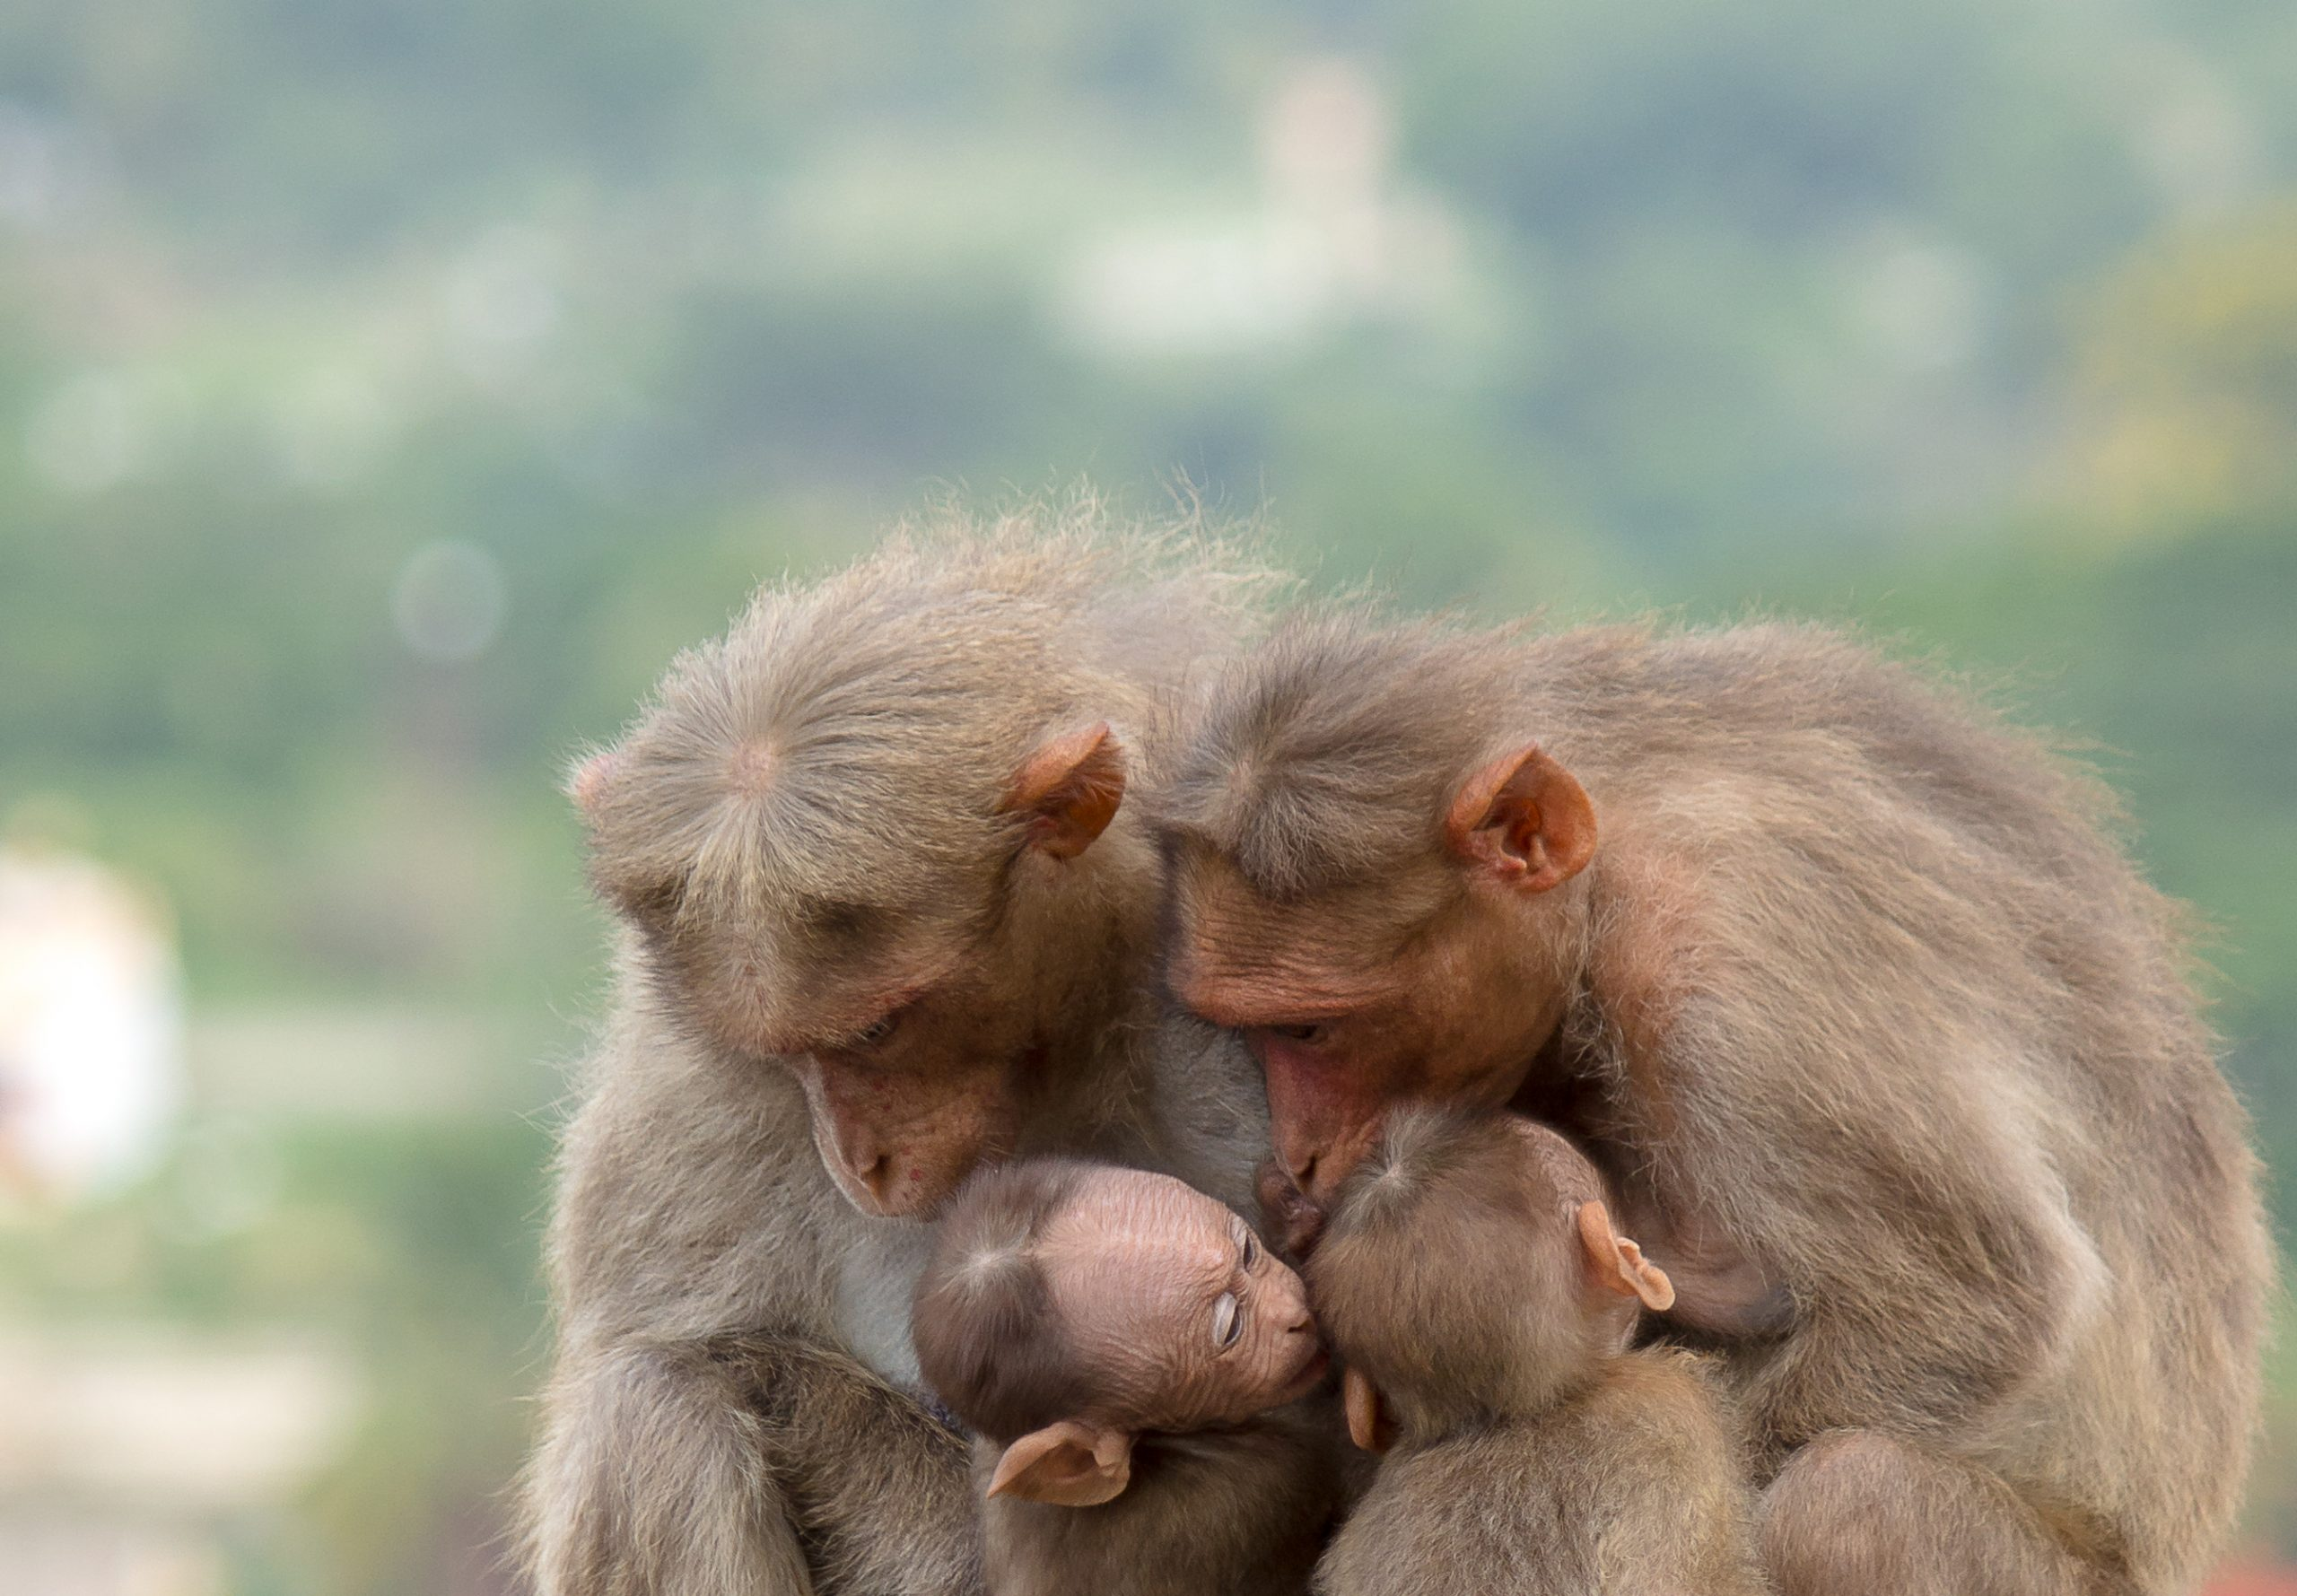 Bonnet macaque Monkeys